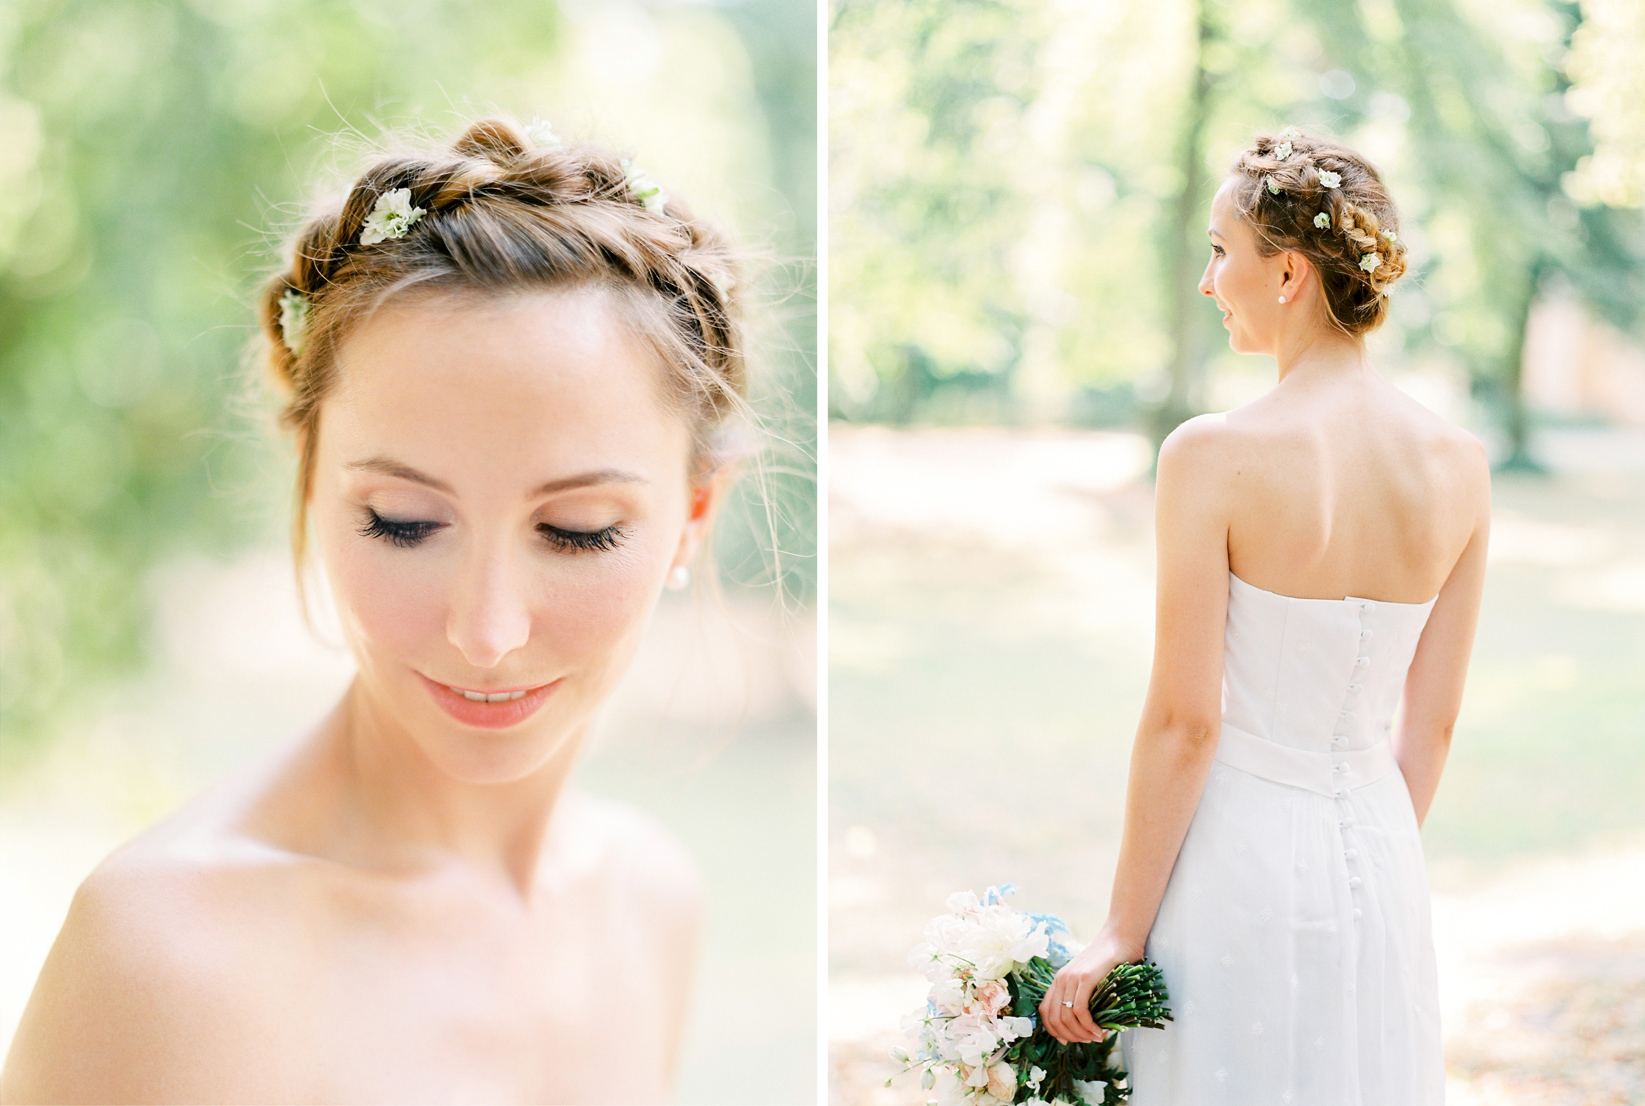 Bridal Crown Braid with Flowers by Lena Schleweis & Summer Bridal Bouquet by Botanic Art